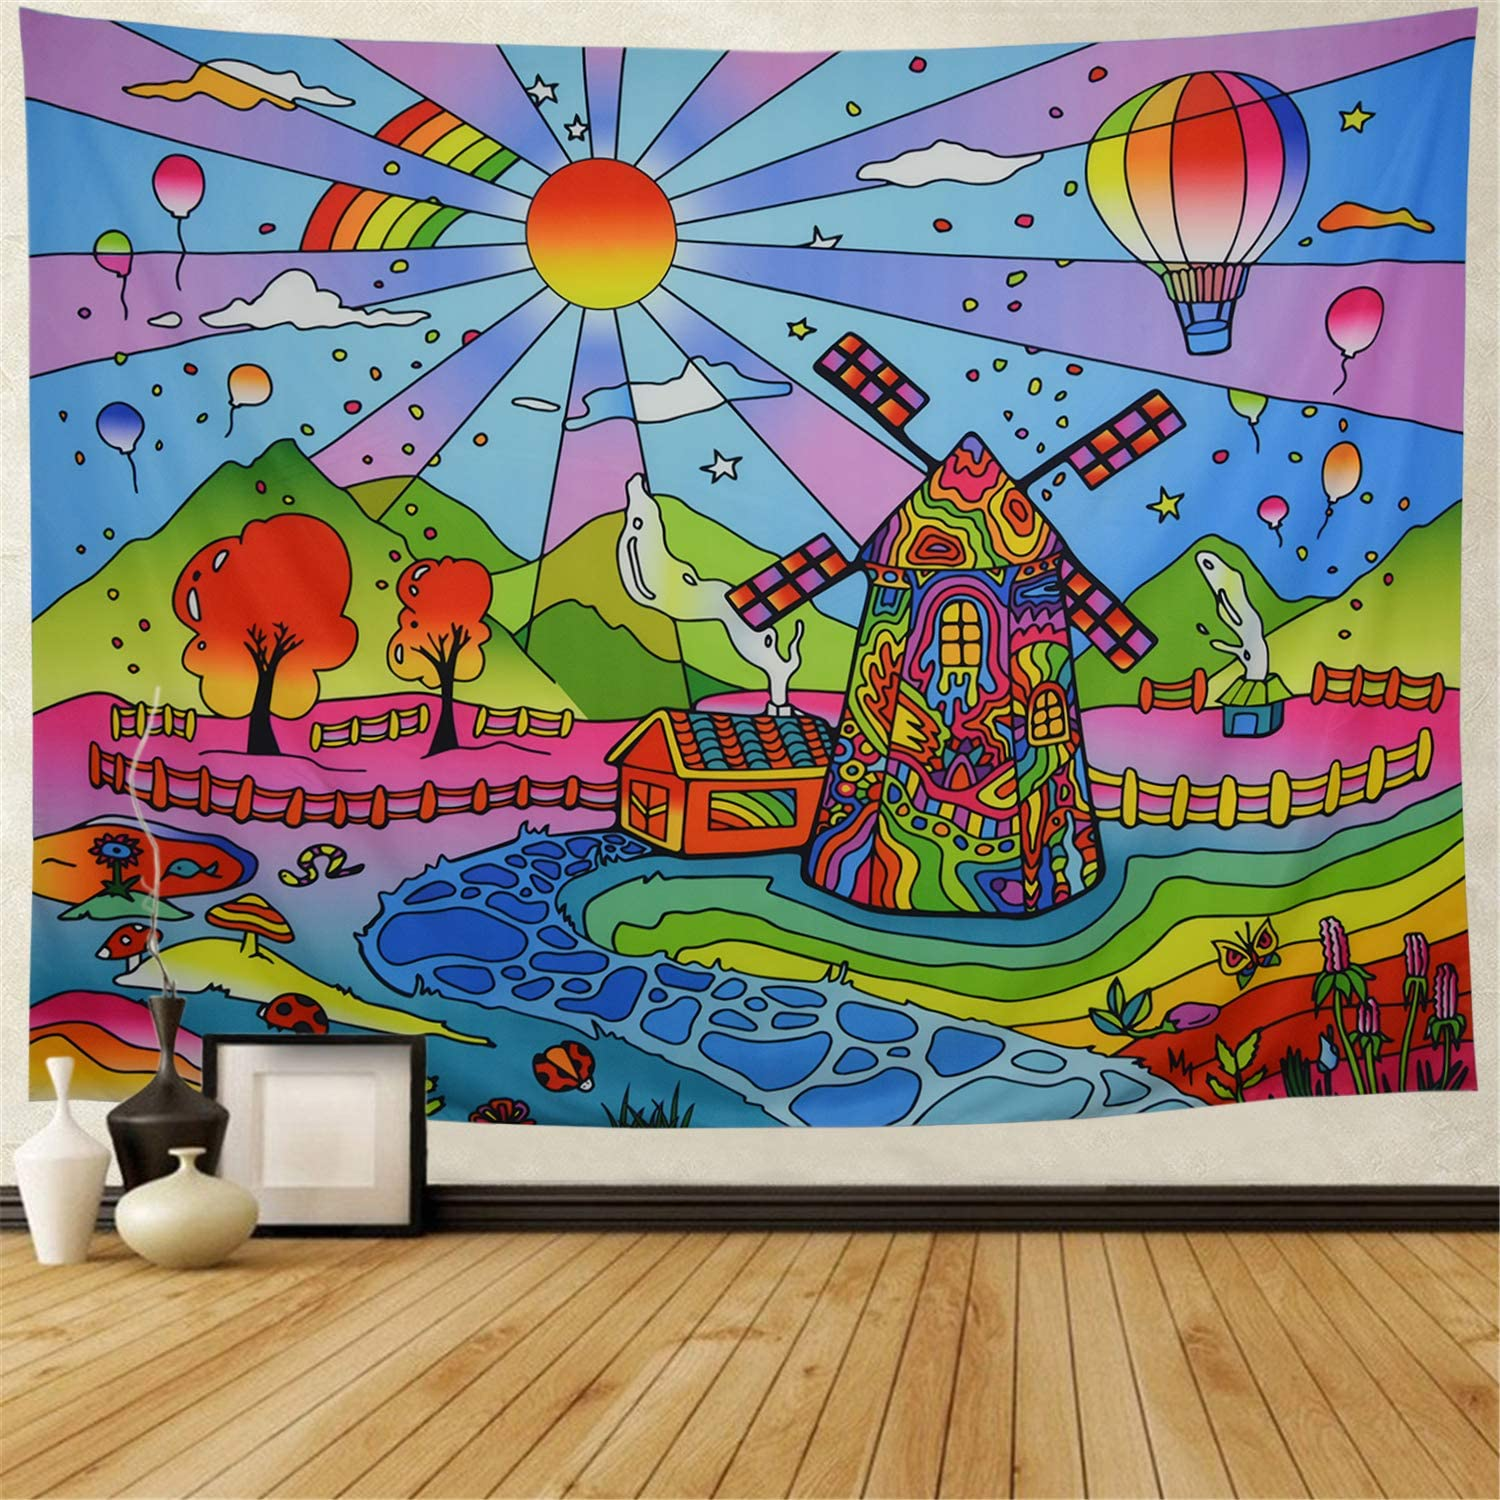 Galoker Trippy Tapestry Fairy Tale Tapestry Fantasy Cartoon World Tapestry Psychedelic Sun Tapestry Abstract Windmill Tapestry Wall Hanging for Kids Cartoon Themed Room Decor(H59.1×W78.7 inches)